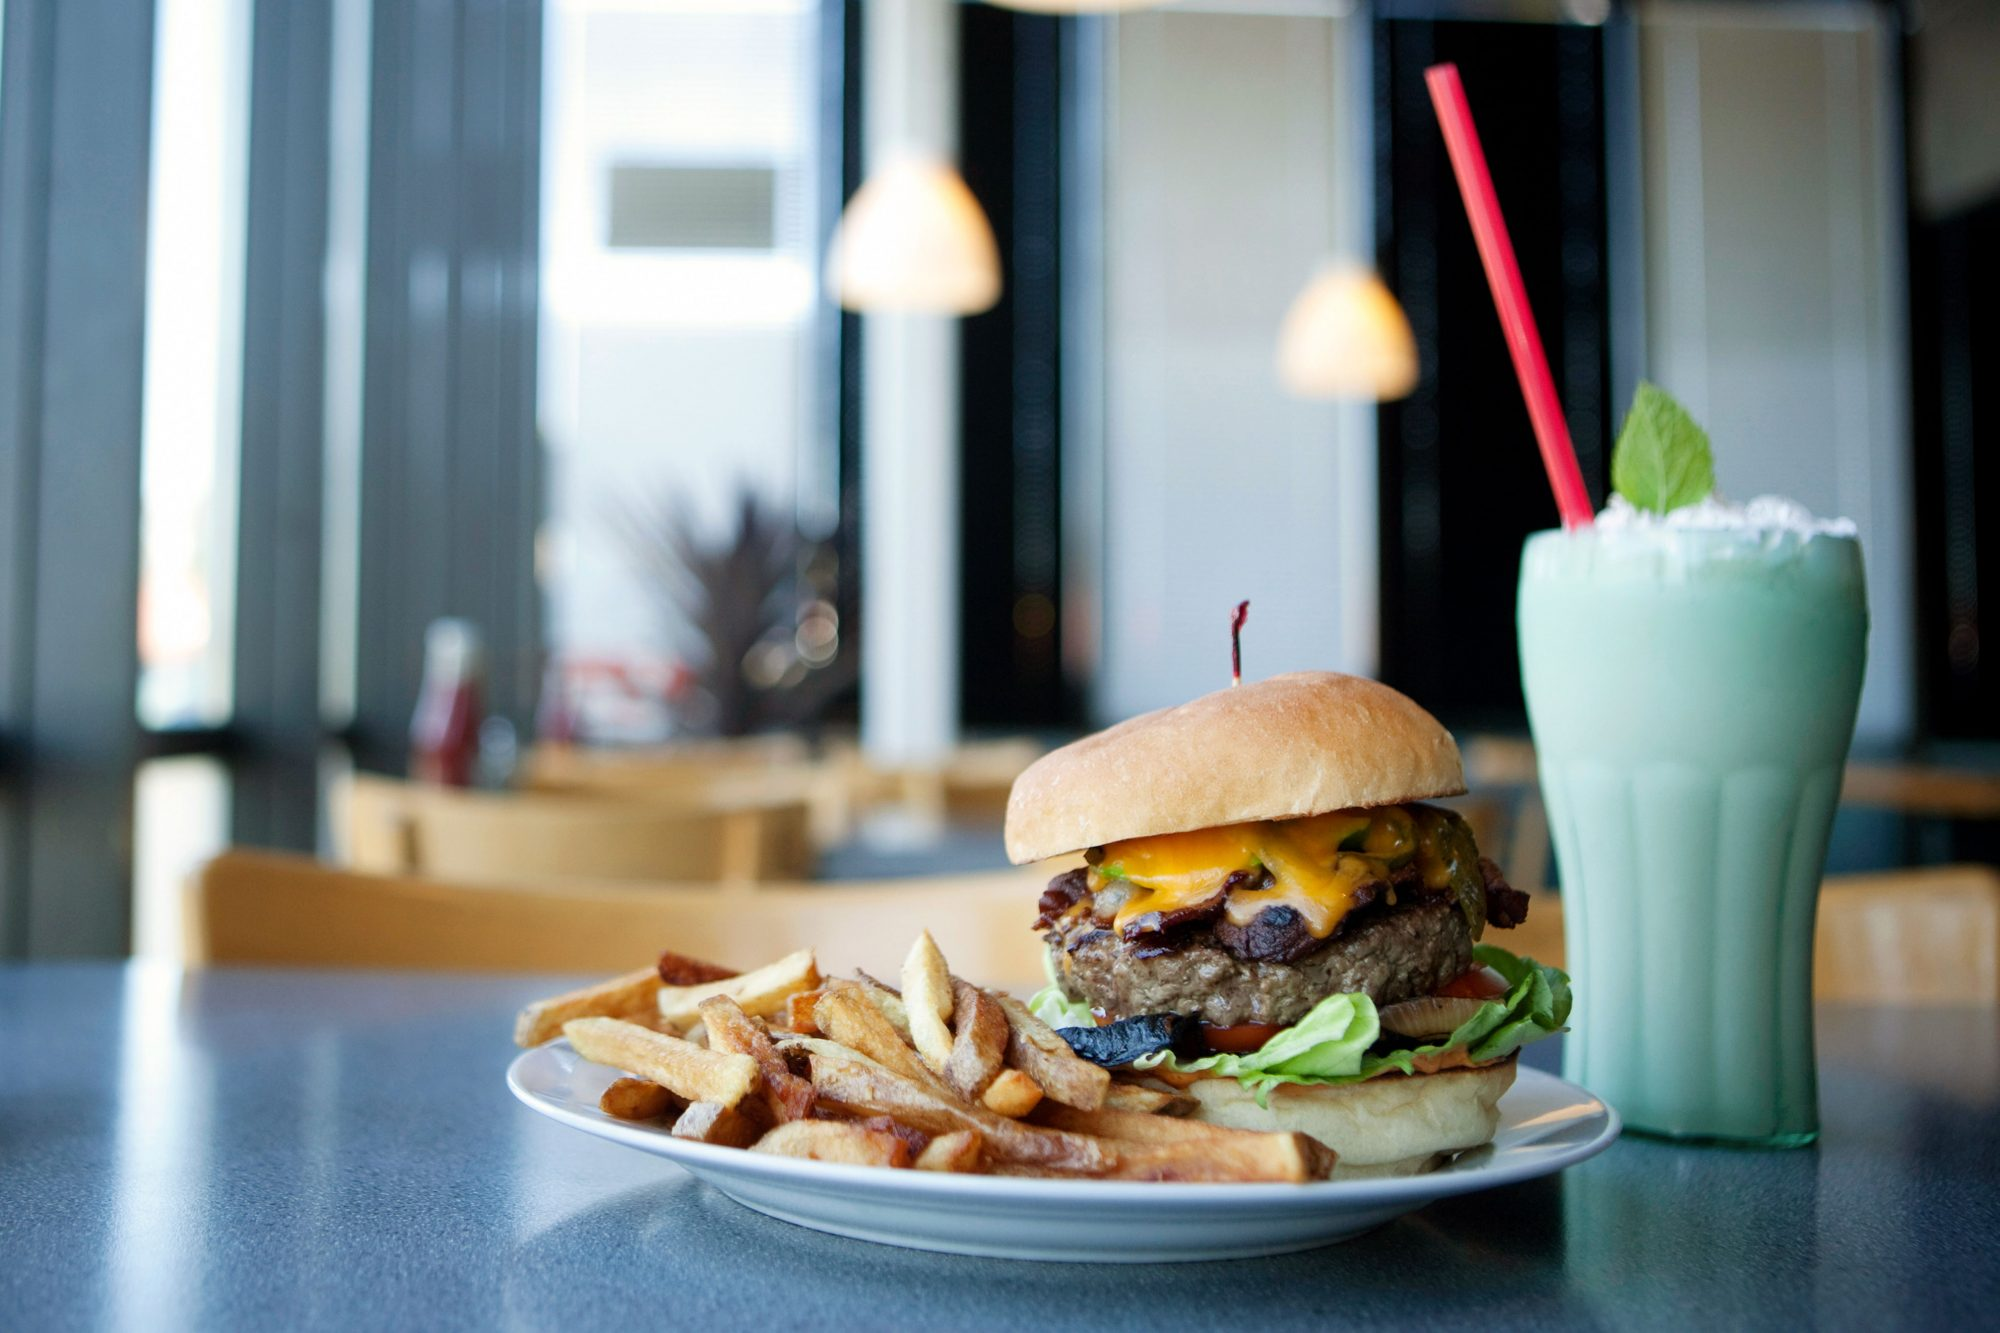 cheeseburger with fries and milkshake on table